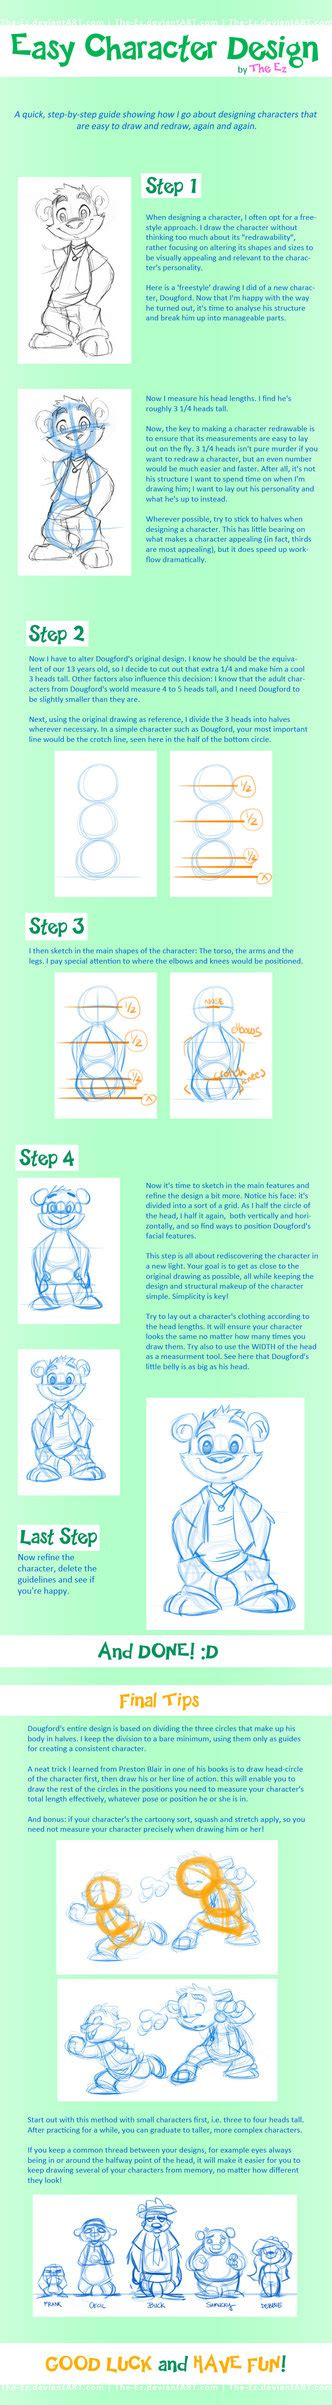 tutorial design character tutorial easy character design by the ez on deviantart